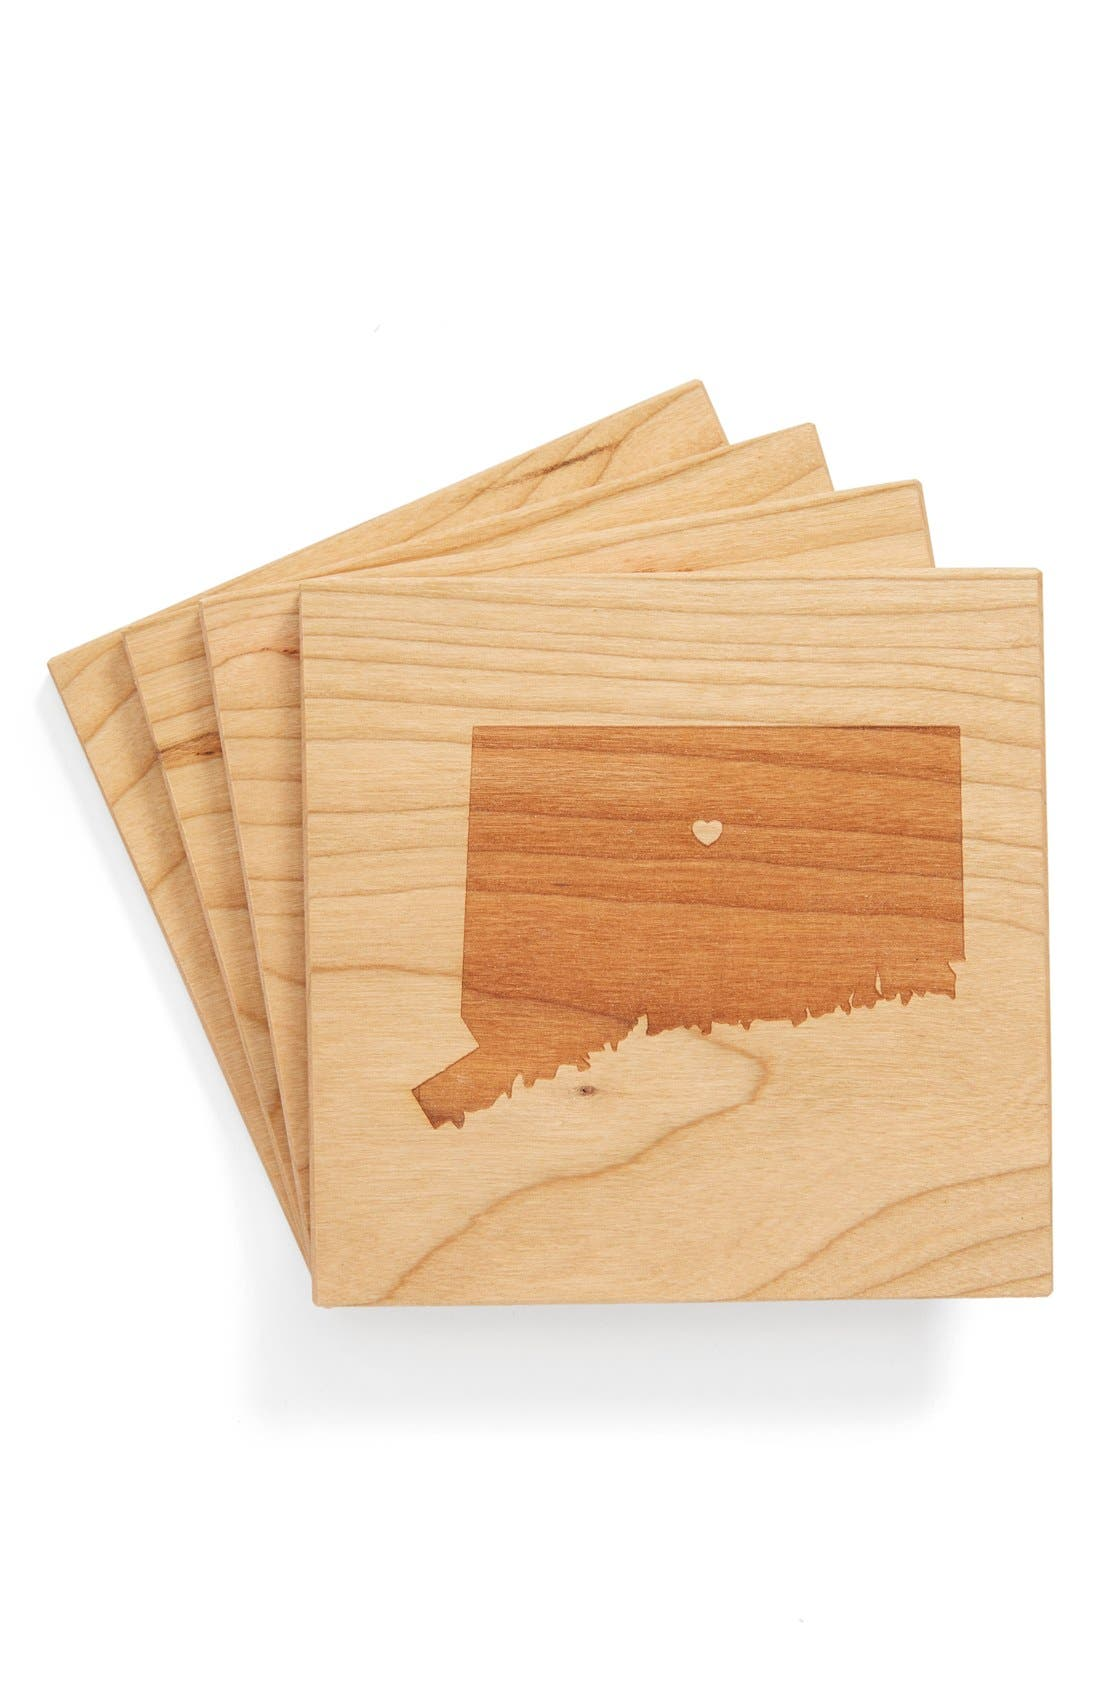 Alternate Image 1 Selected - Richwood Creations 'State Silhouette' Coasters (Set of 4)